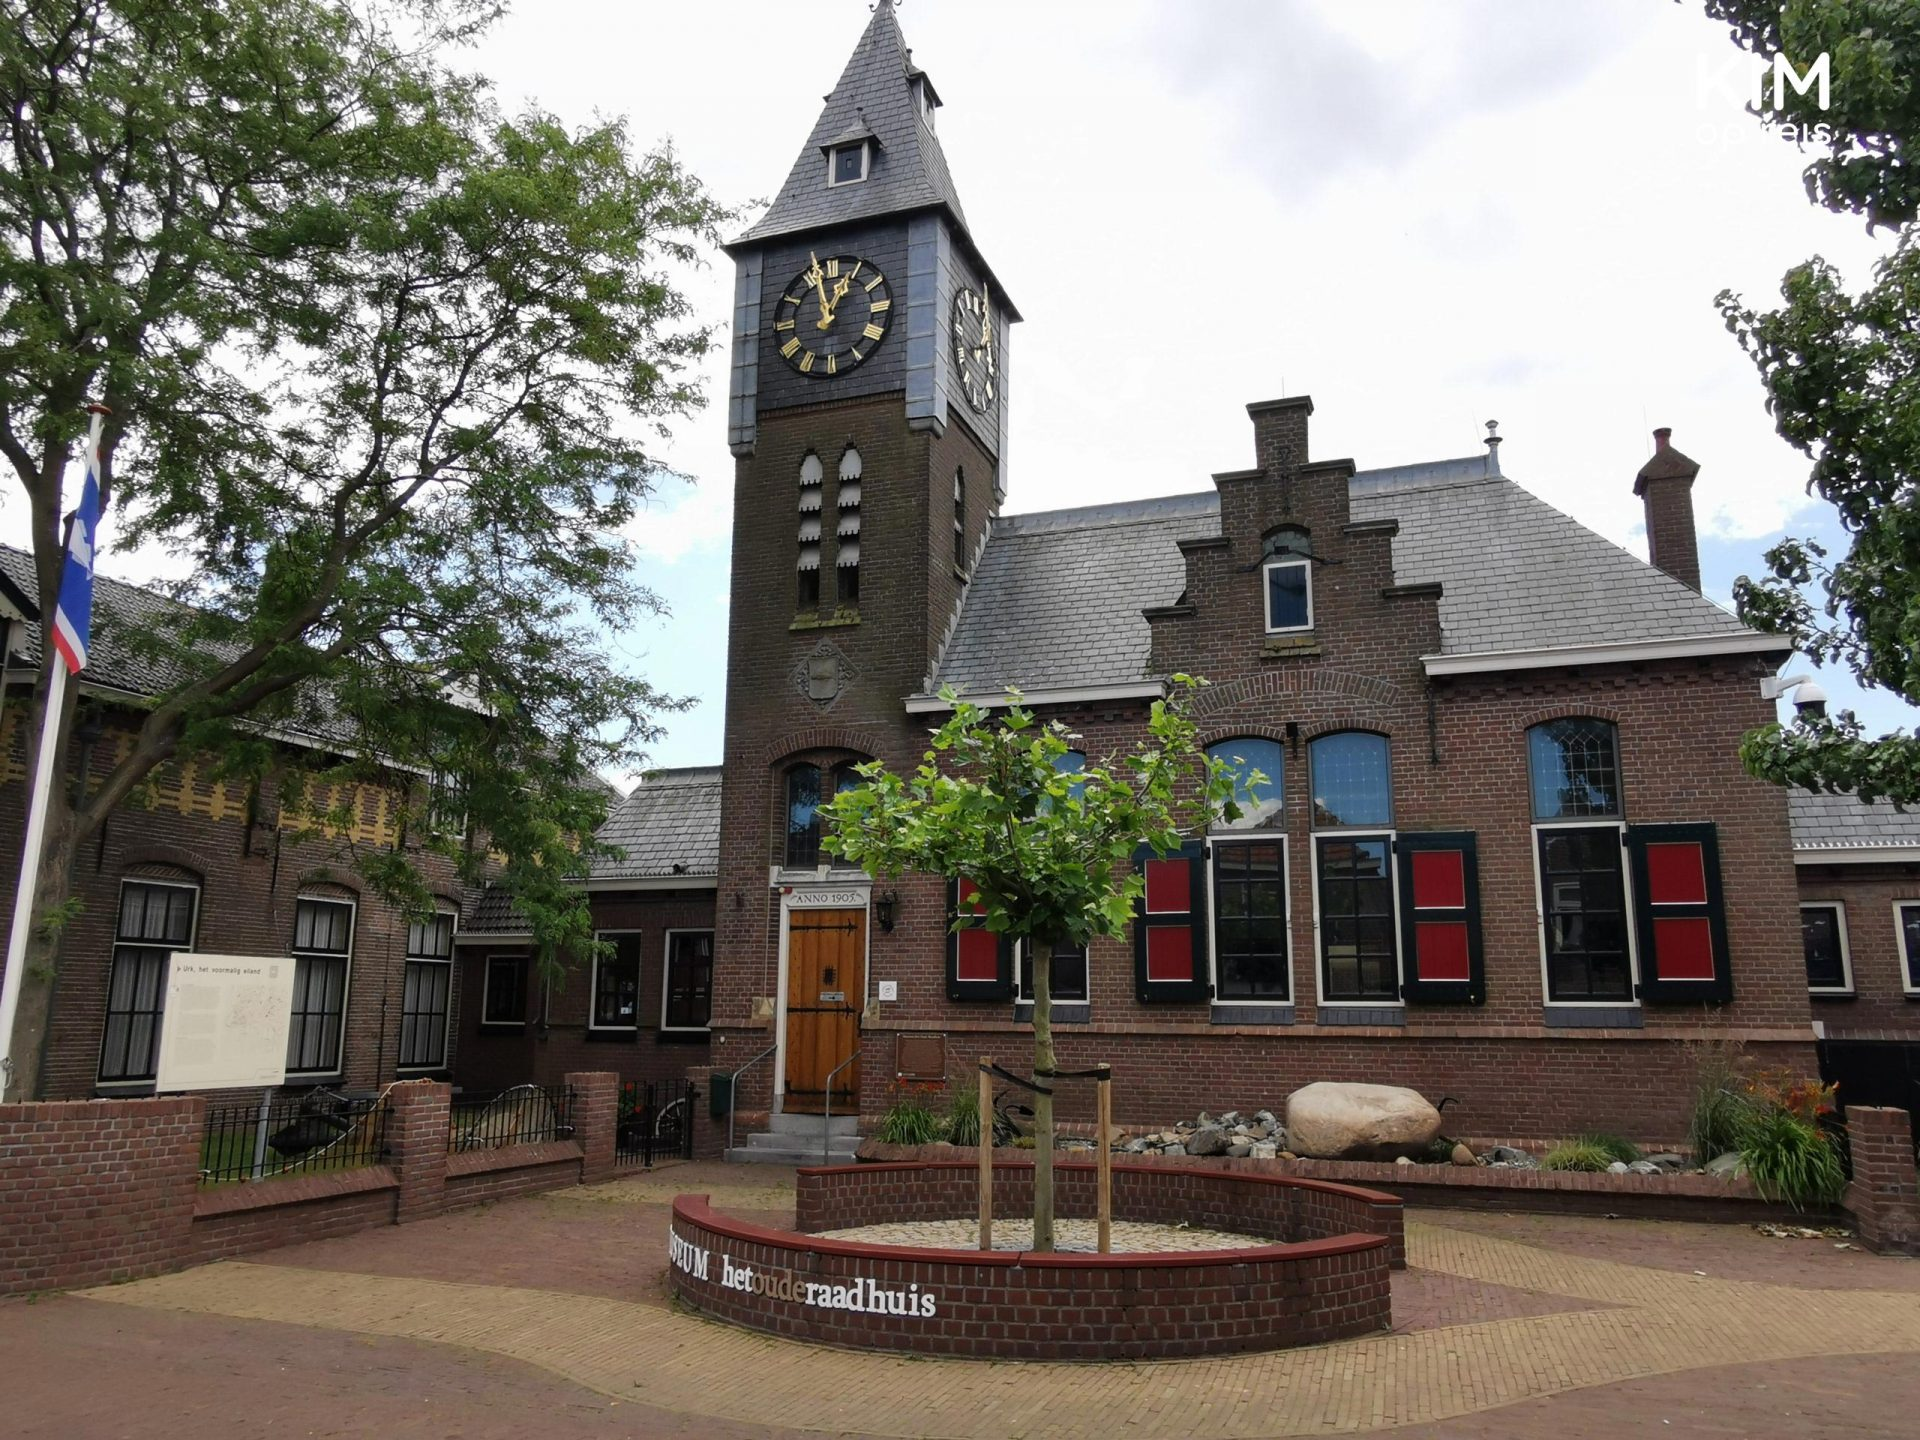 Museum het Oude Raadhuis - the exterior of the museum with a small flowerbed and a stately clock on the tower